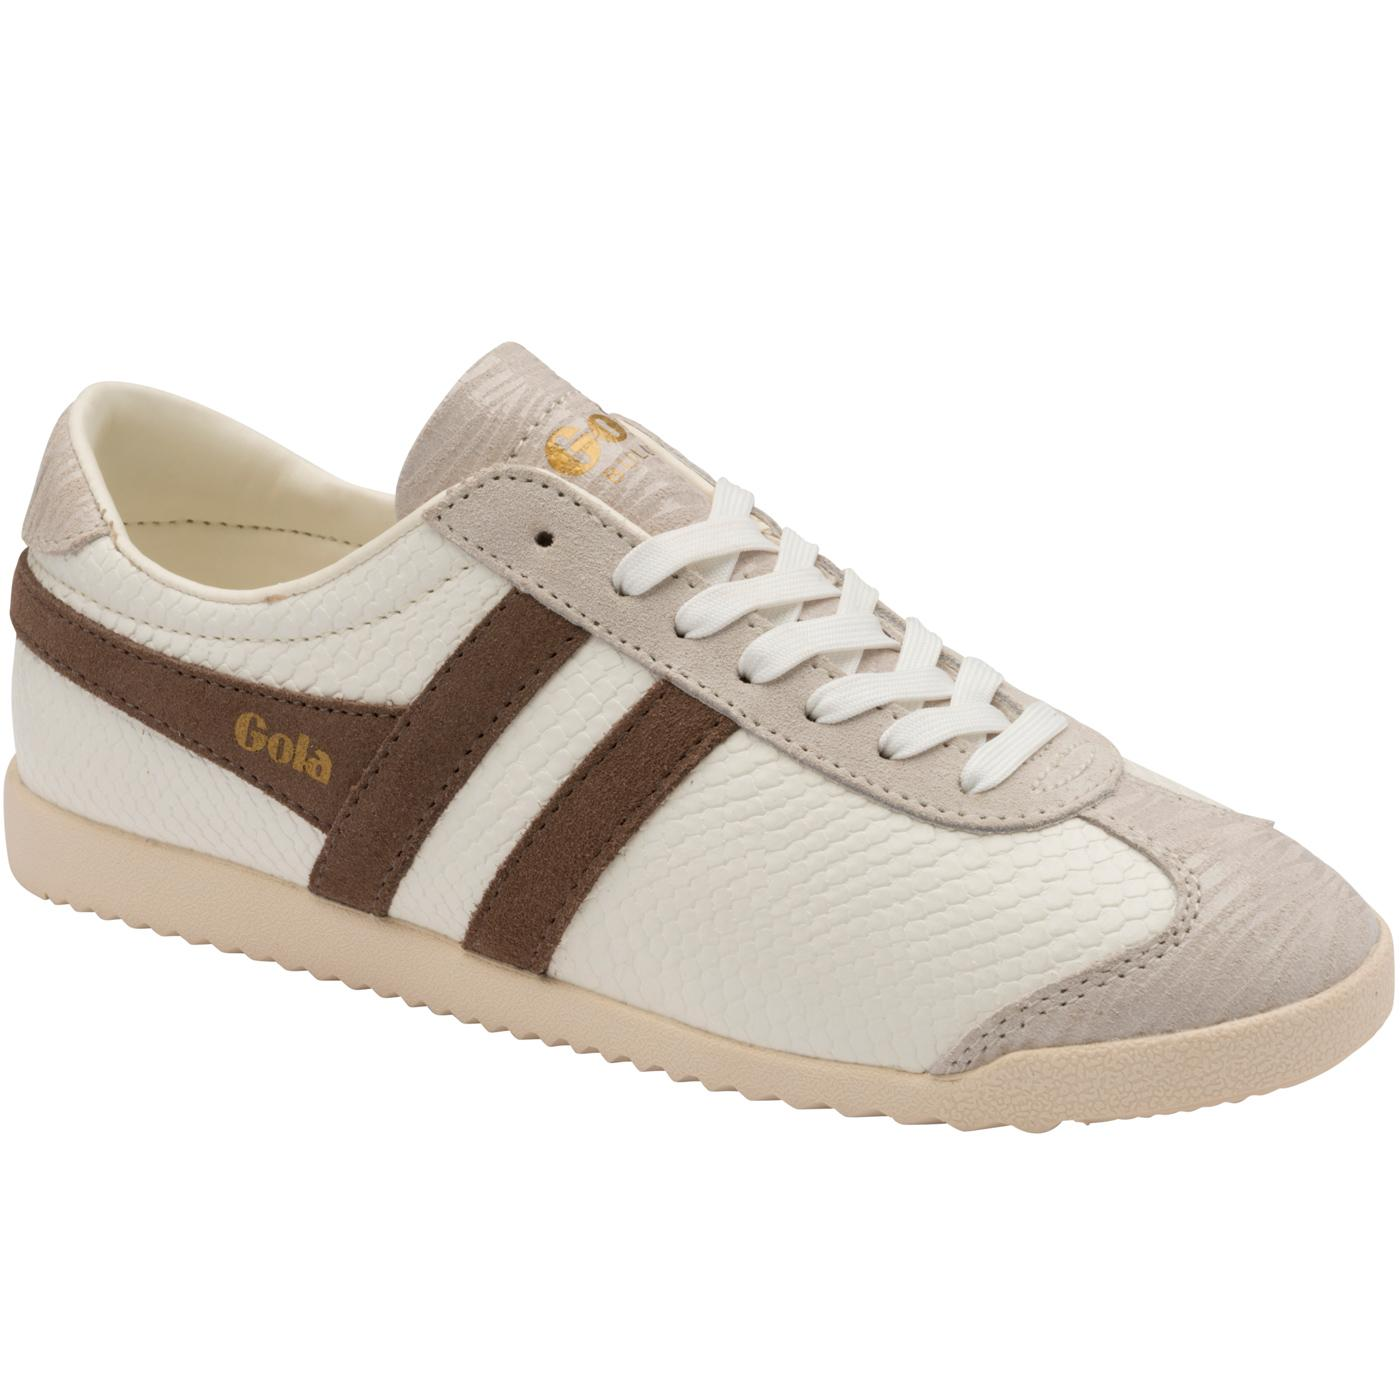 Bullet Reptile GOLA Womens Retro Trainers (OW/TG)